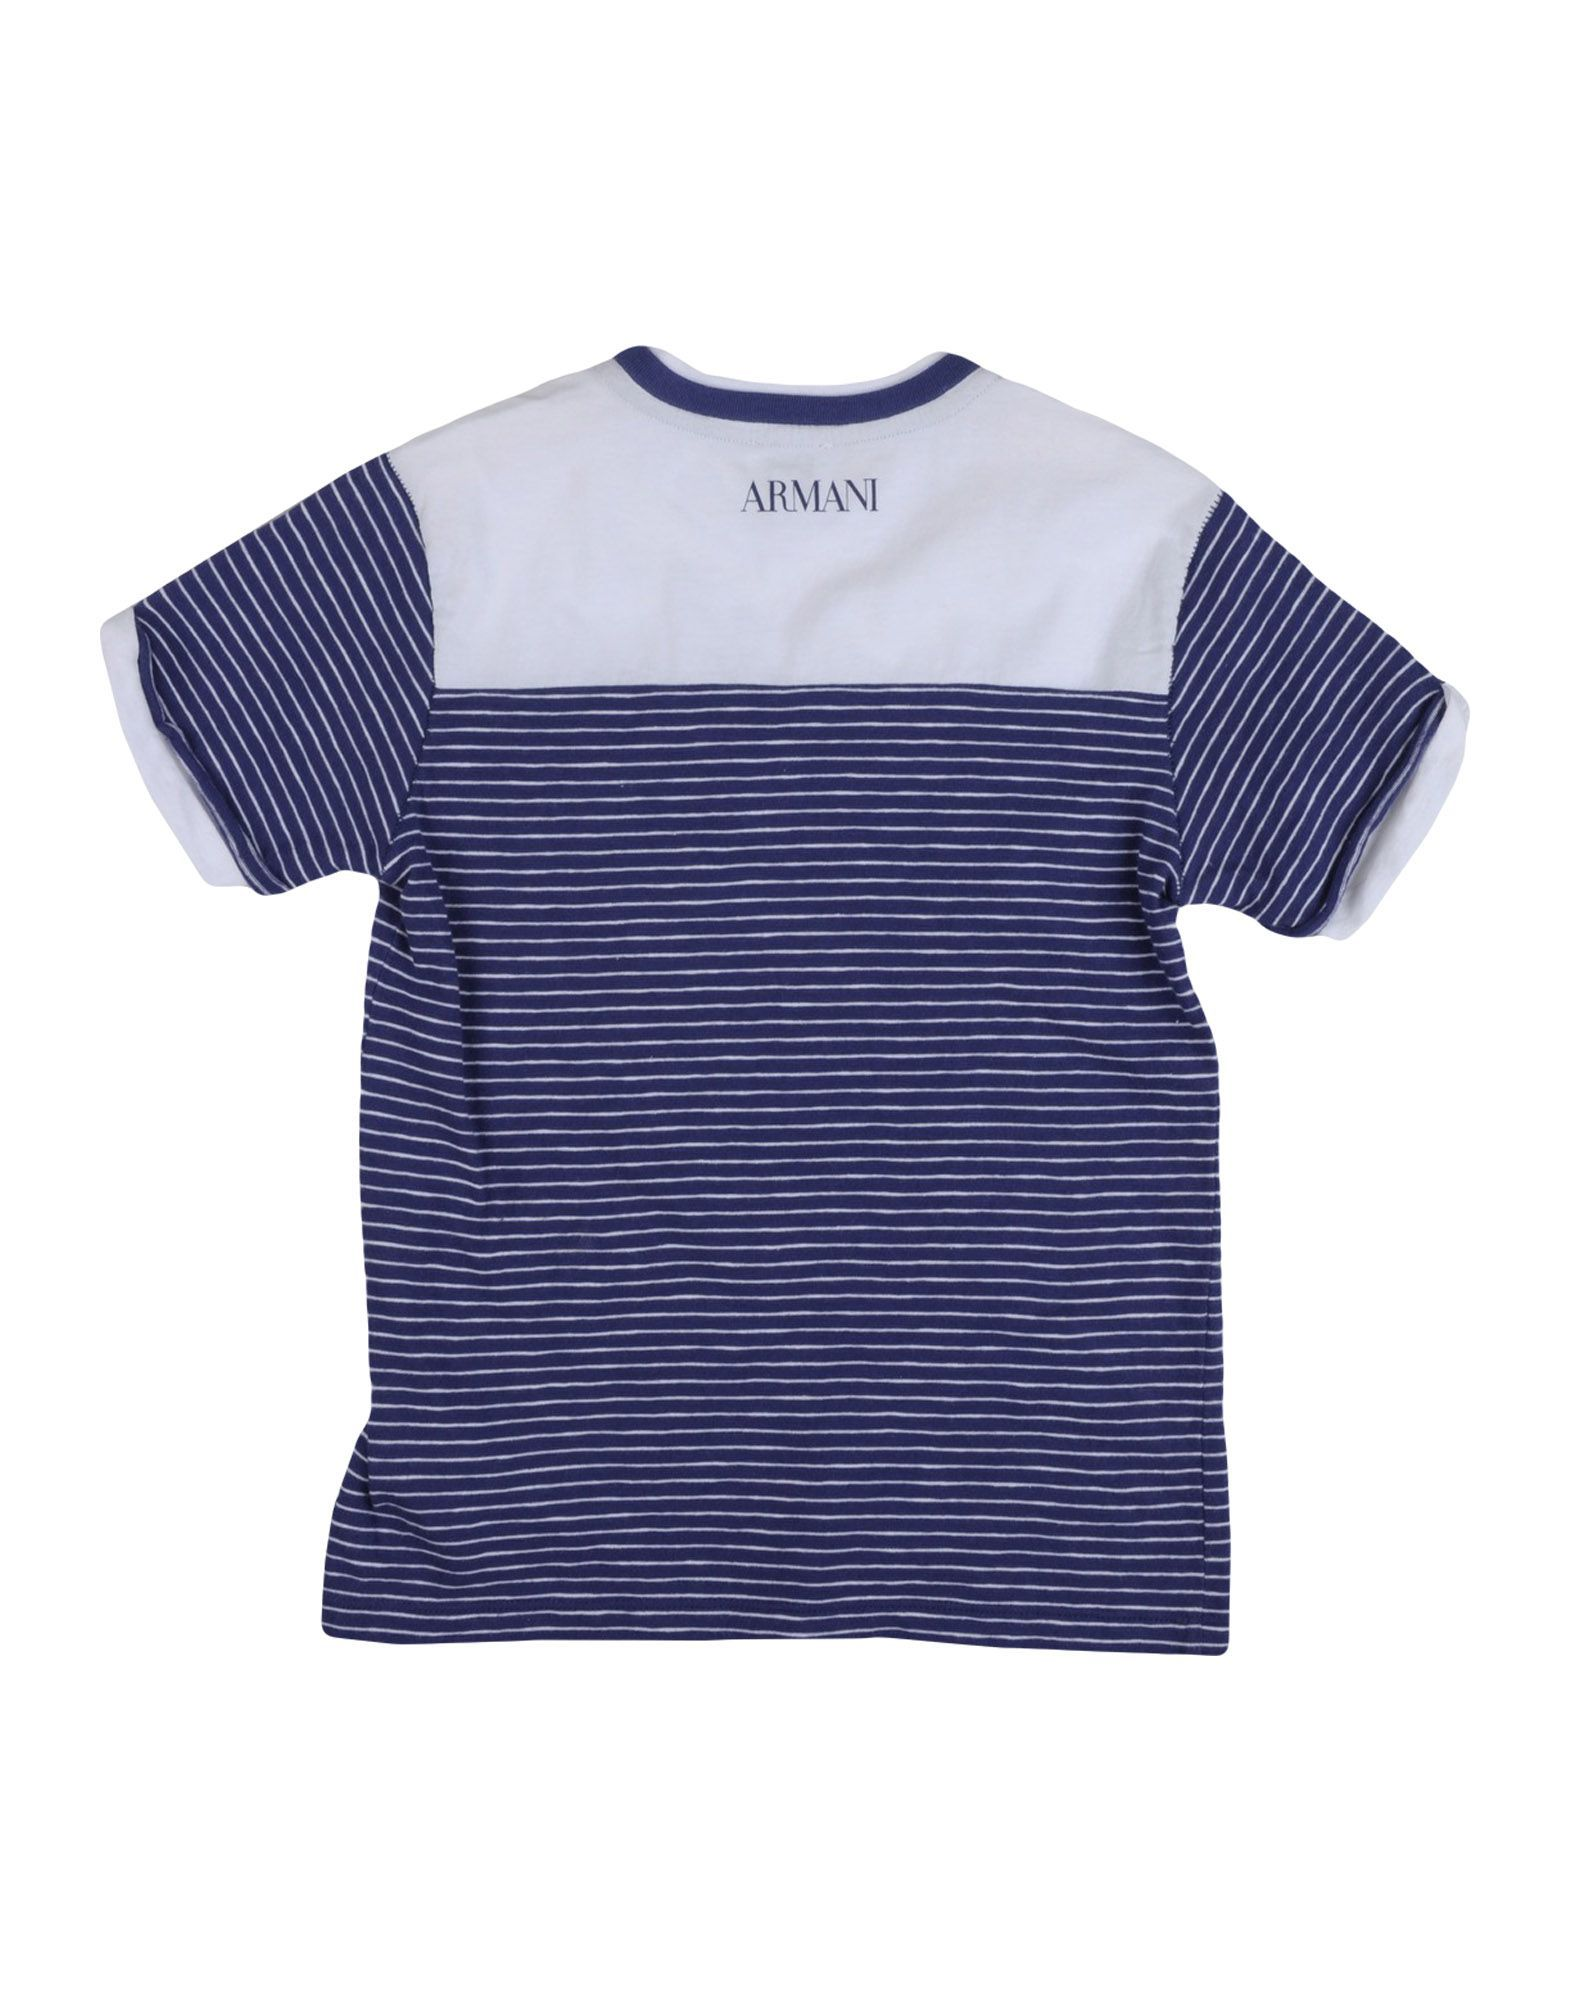 TOPWEAR Armani Junior Blue Boy Cotton